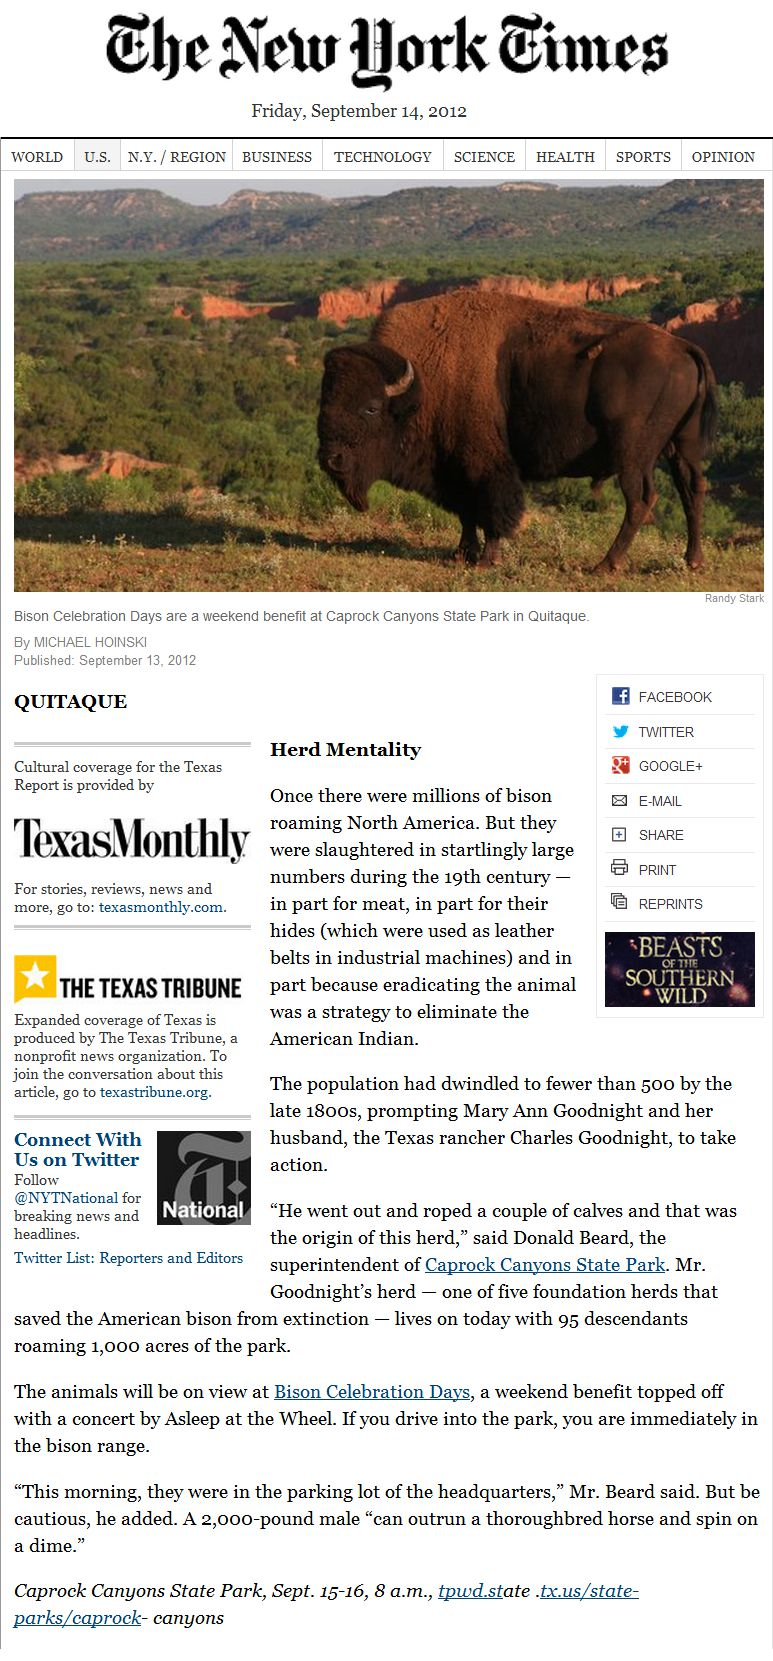 Quitaque in the New York Times